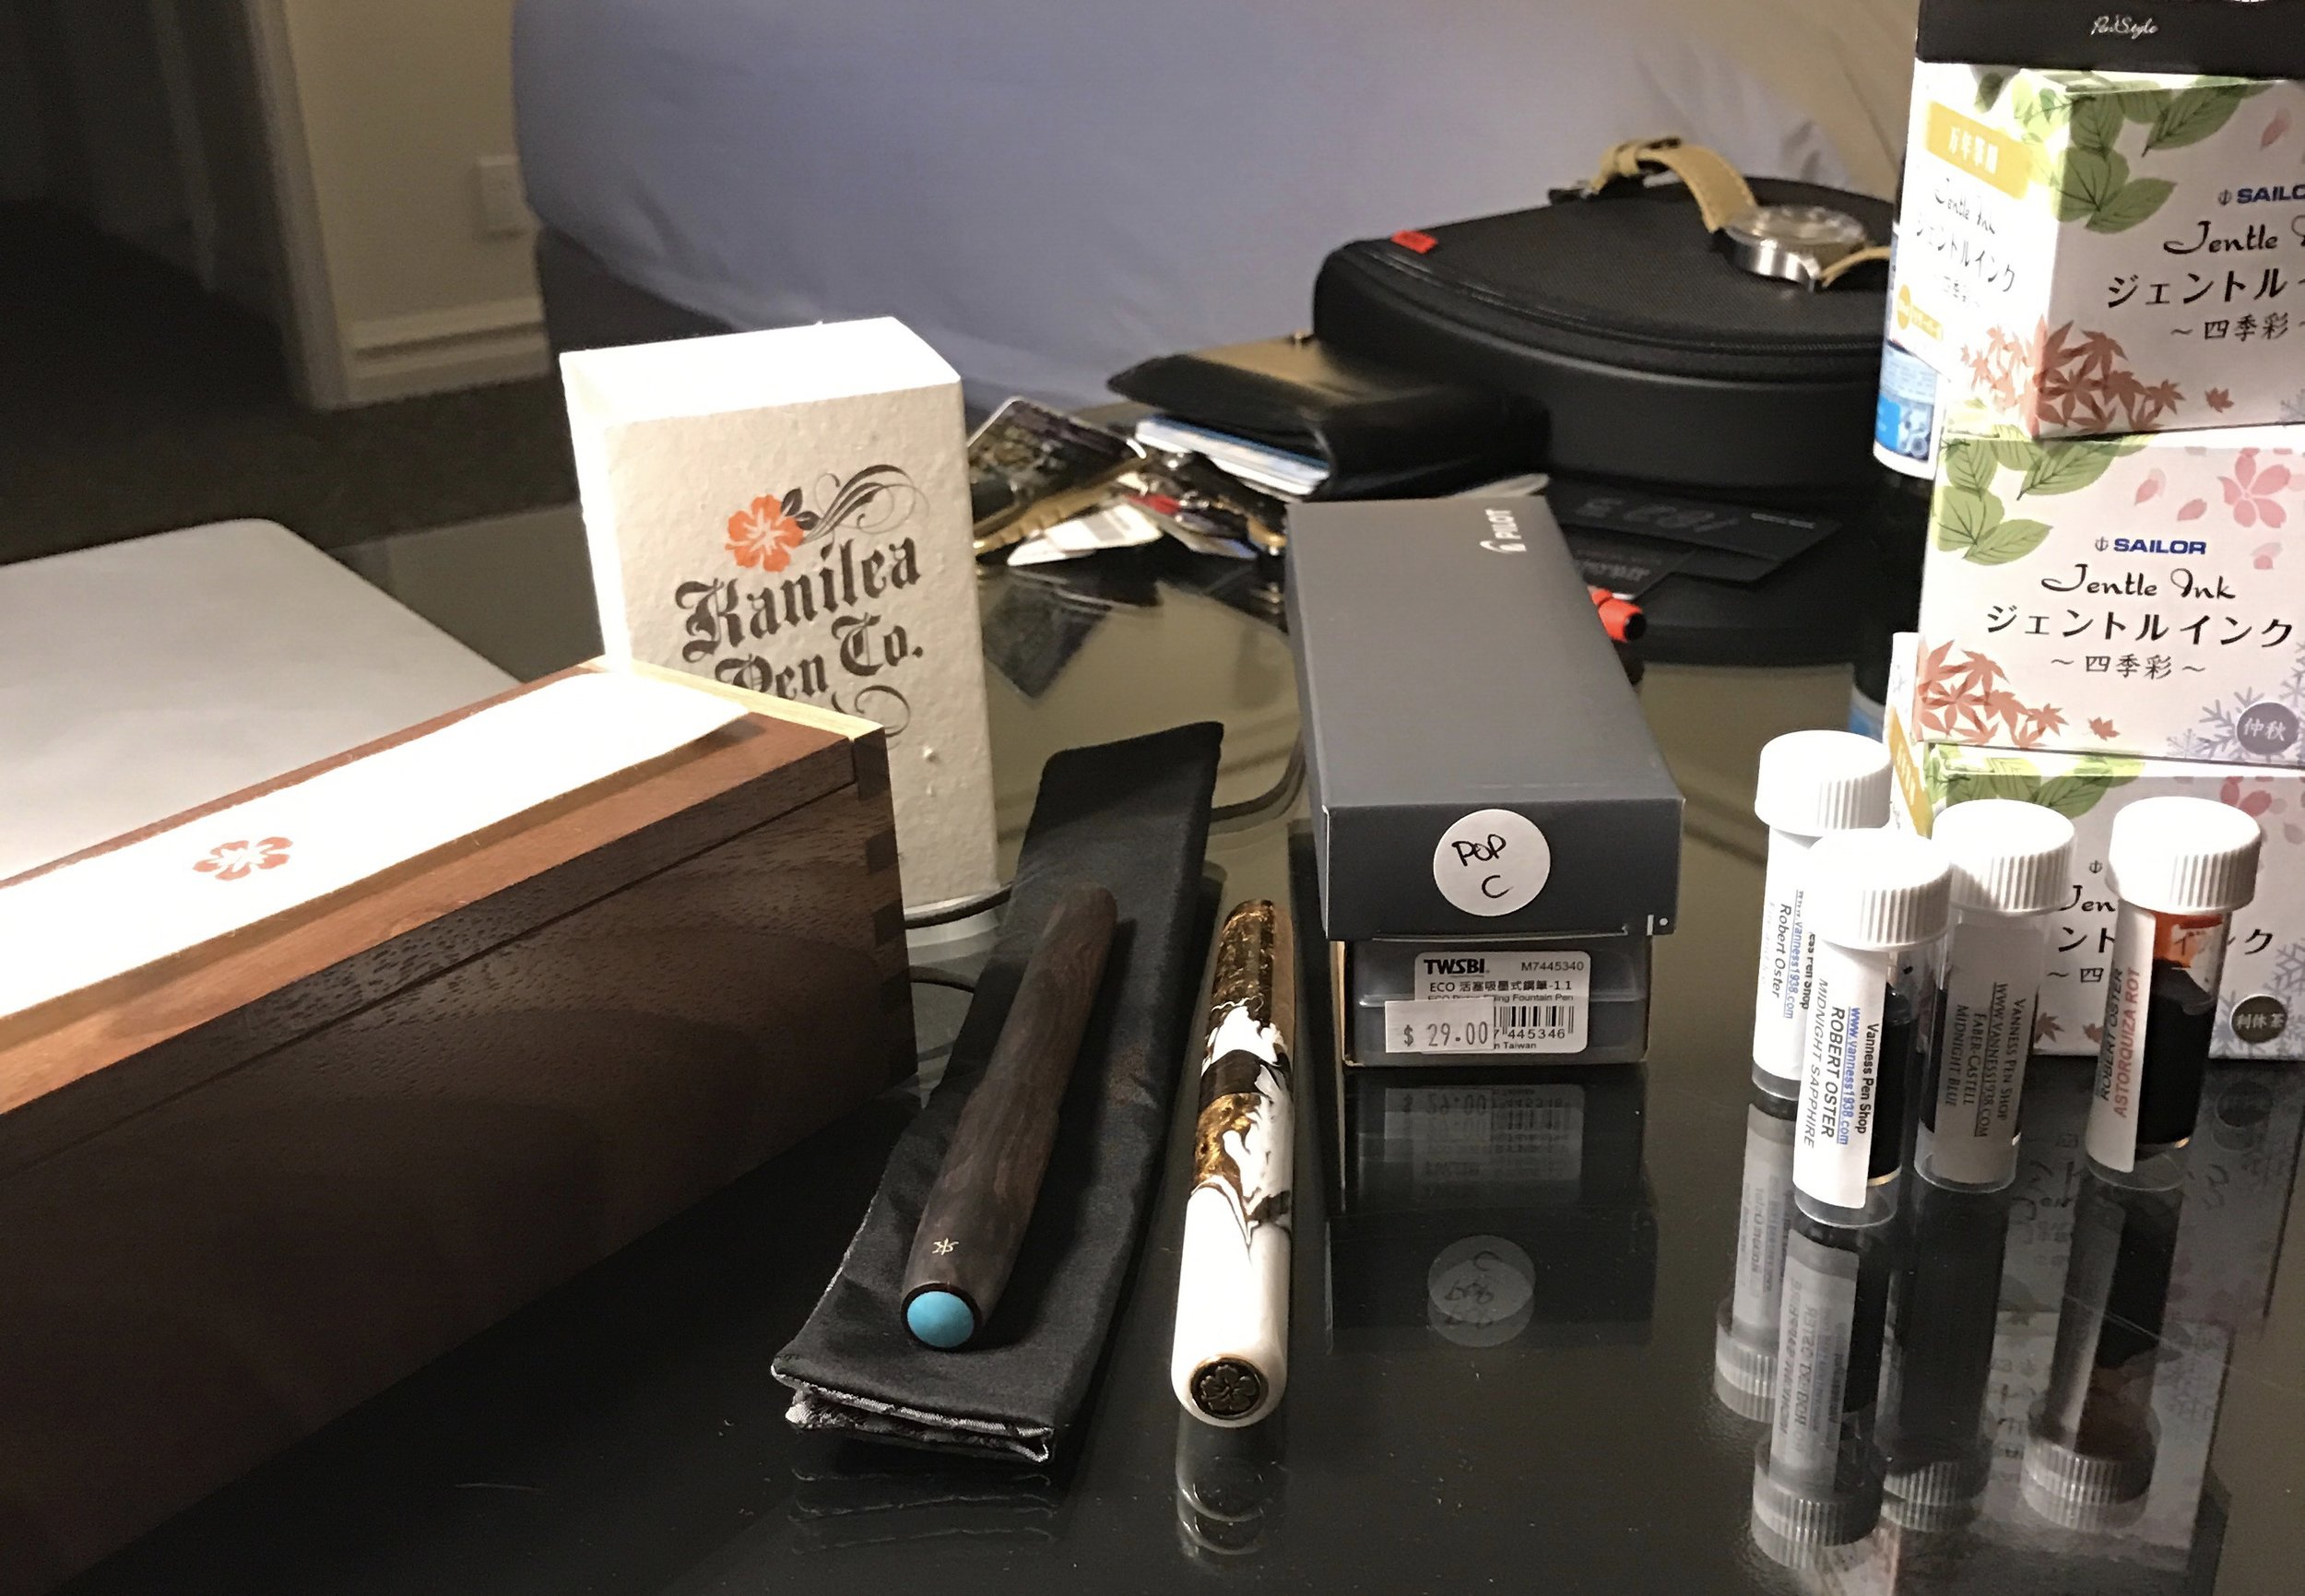 Pens and Ink I purchased on Friday in Baltimore:  Ryan Krusac Legend in Cocobolo with Turquoise Inlay ,  Kanilea Pen Company Mauna Kea ,  Pilot Metropolitan/MR in Gray with Stub Nib ,  Clear TWSBI Eco with Stub Nib , some  Robert Oster Ink Samples from Vanness Pens , and some  Sailor Inks (Chu Shu, Rikyu Cha, and Waka Uguisu) from Anderson Pens .